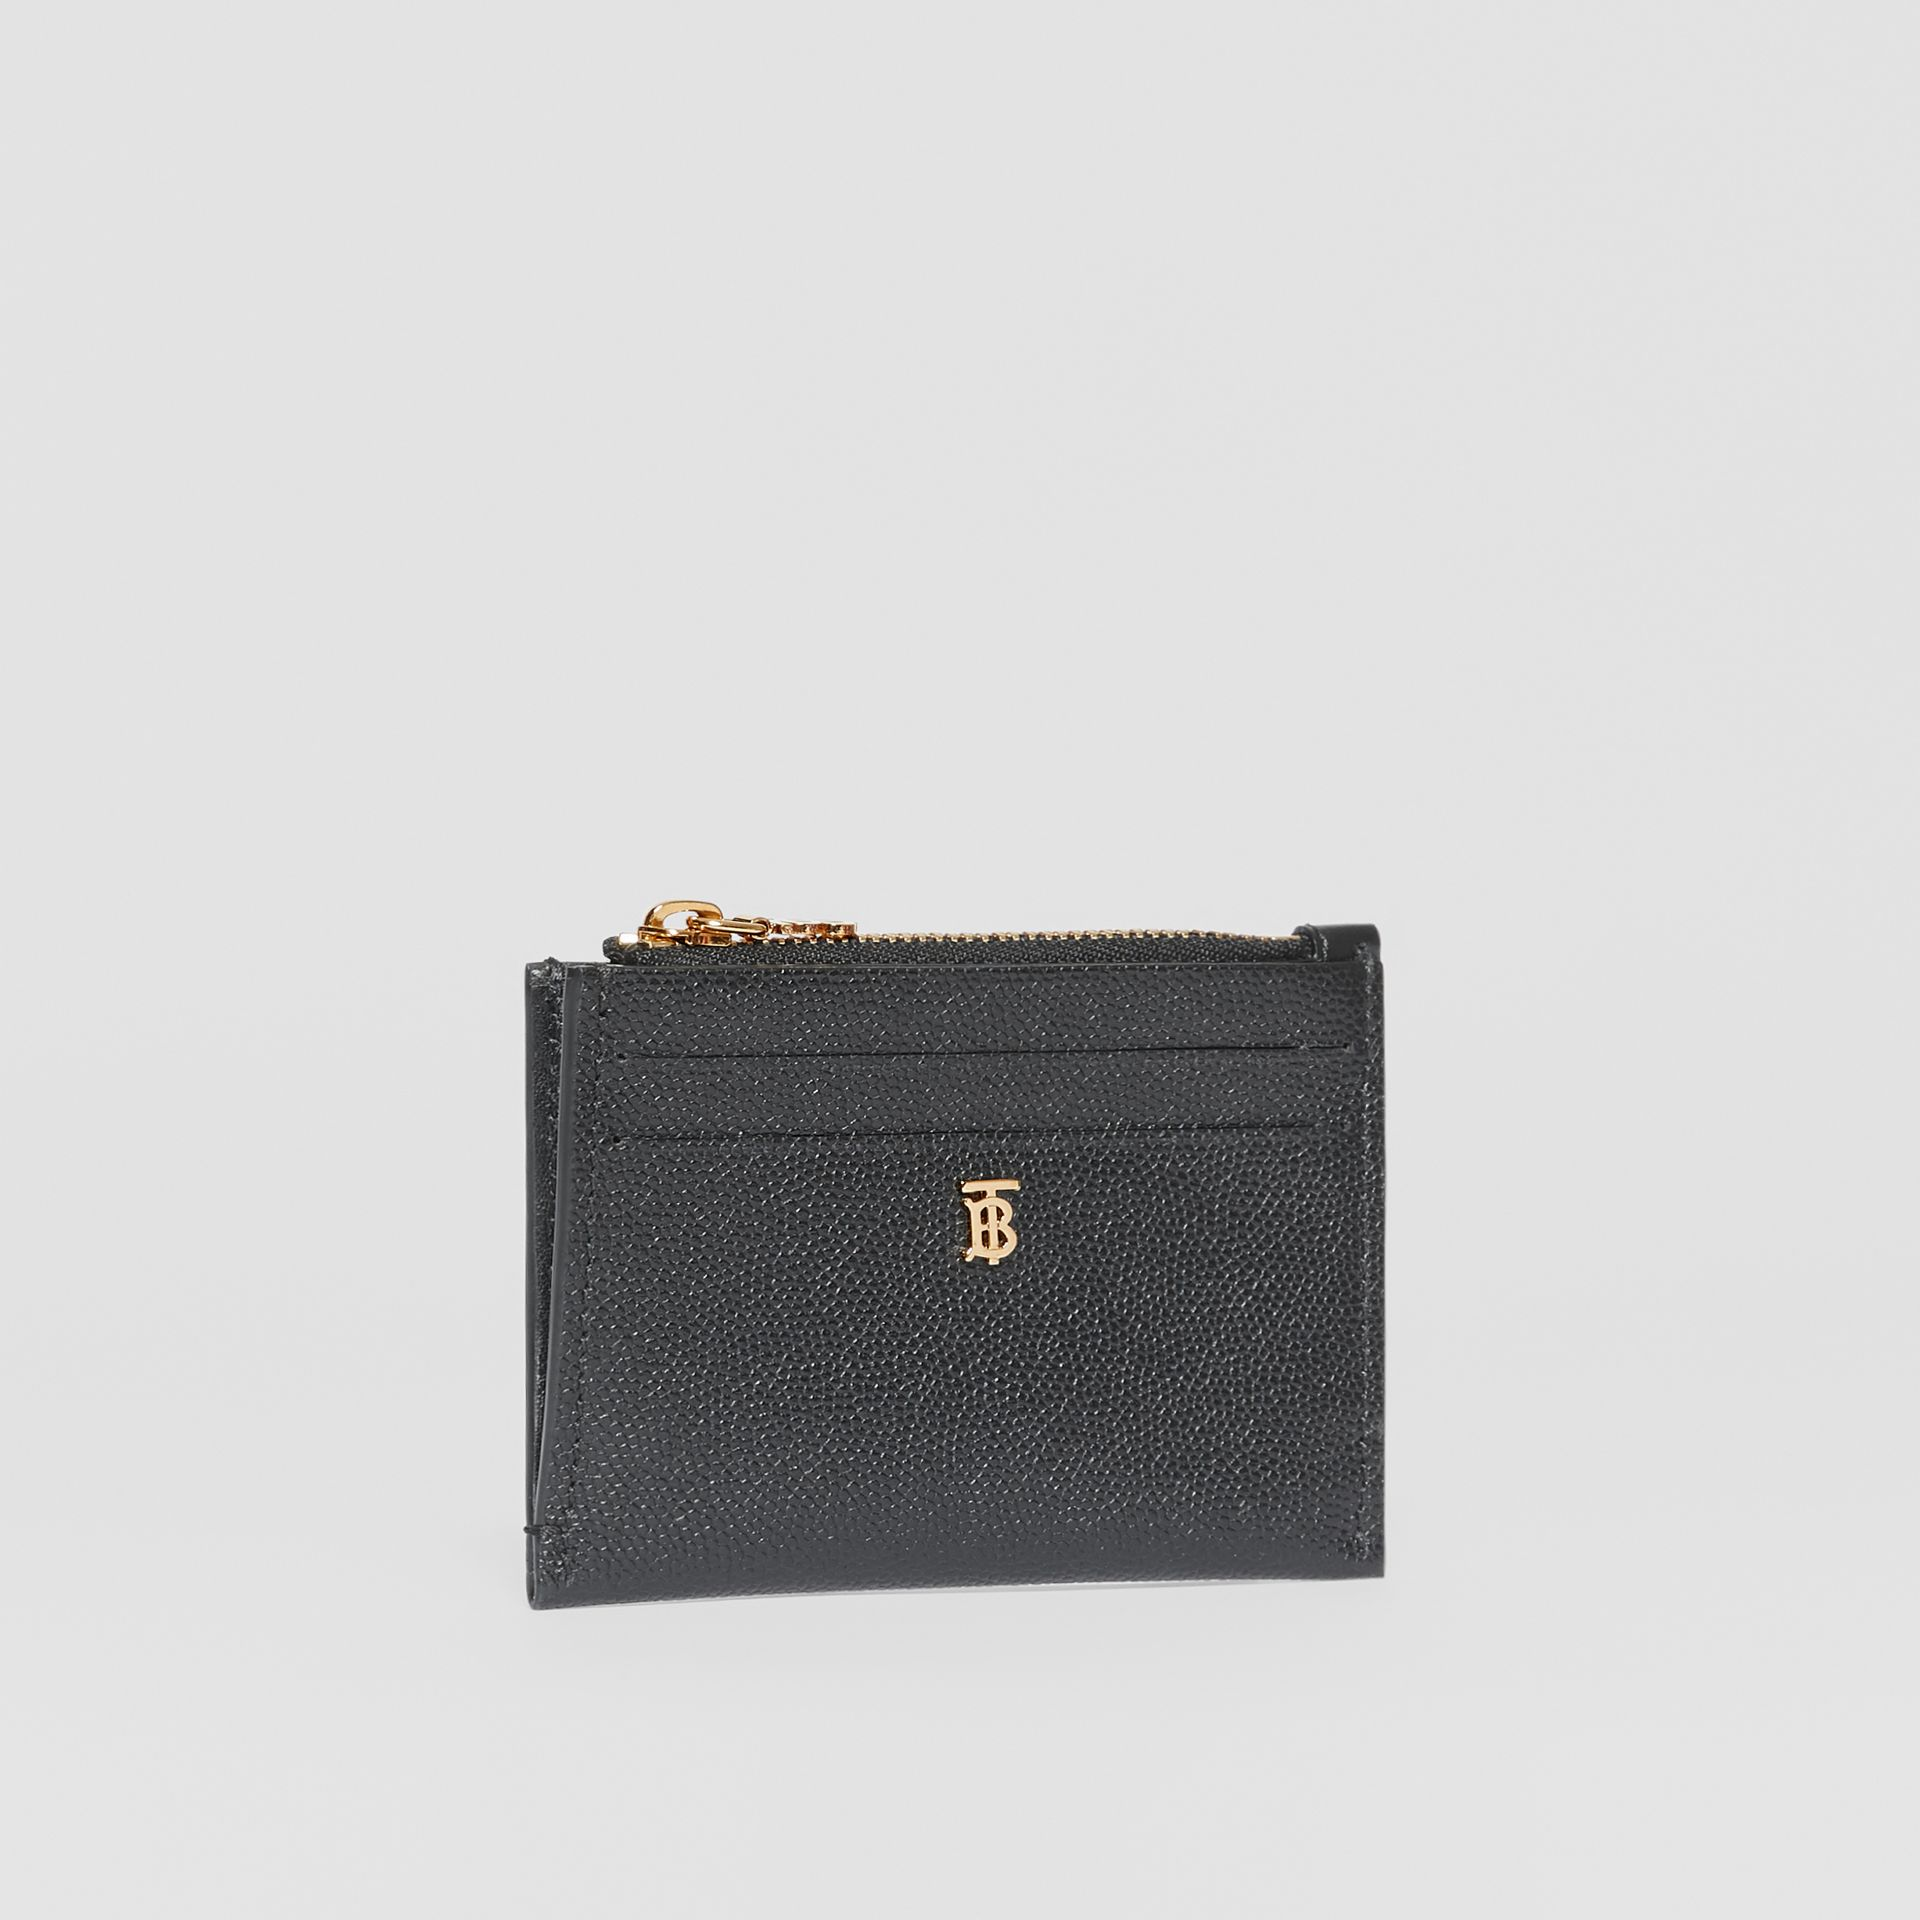 Monogram Motif Grainy Leather Zip Card Case in Black - Women | Burberry - gallery image 3